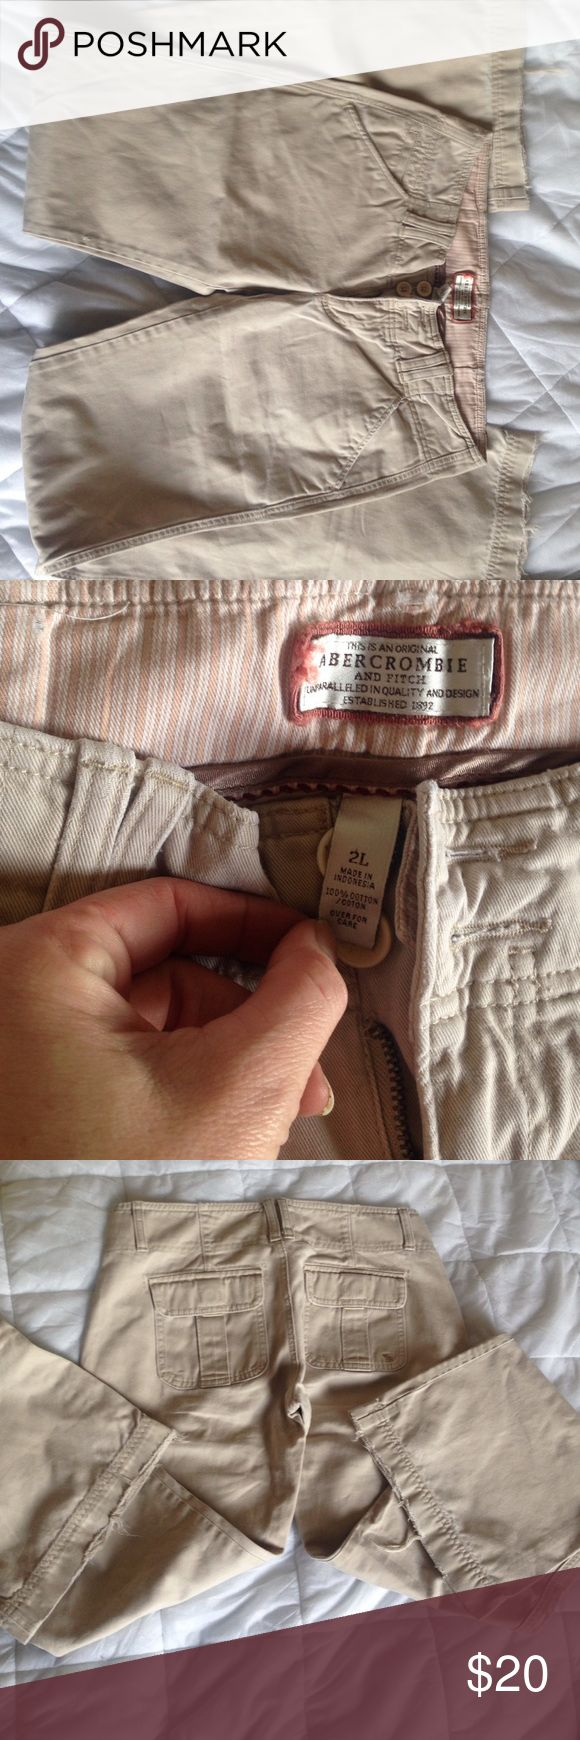 Abercrombie and Fitch trouser pants My favorite pants but they are to big for me now. Very loved but still have a lot of life in them. The bottoms are starting to fry just a bit. They are a size 2long Abercrombie & Fitch Pants Trousers